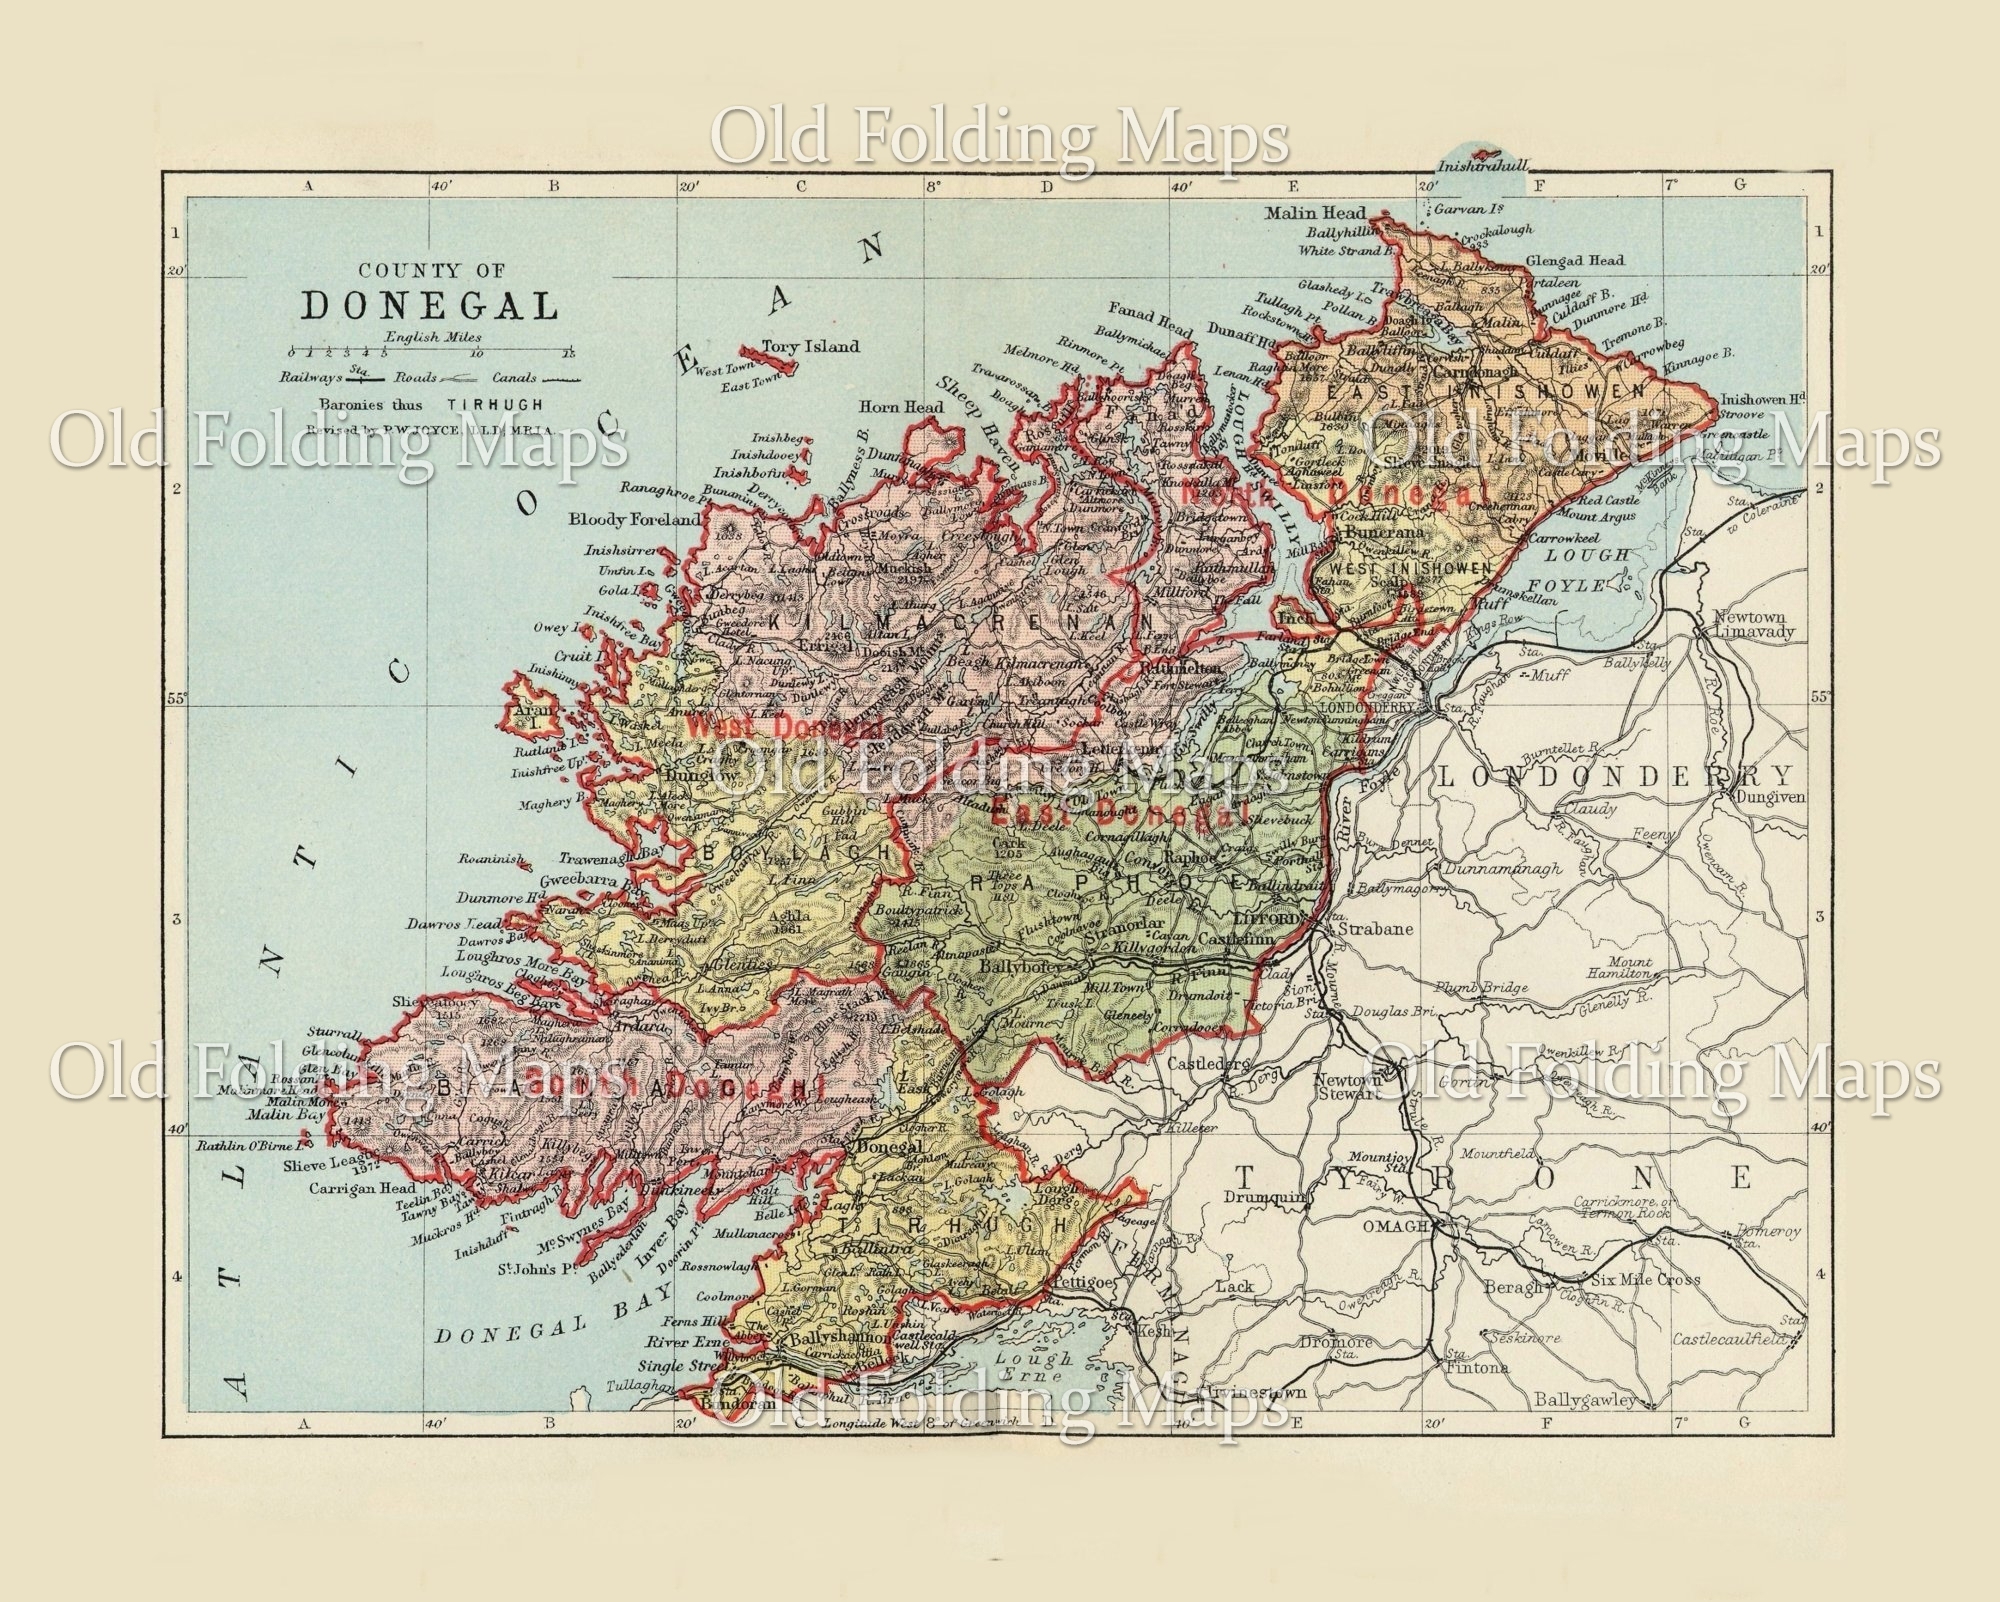 Antique County Map of Donegal, Ireland circa 1884